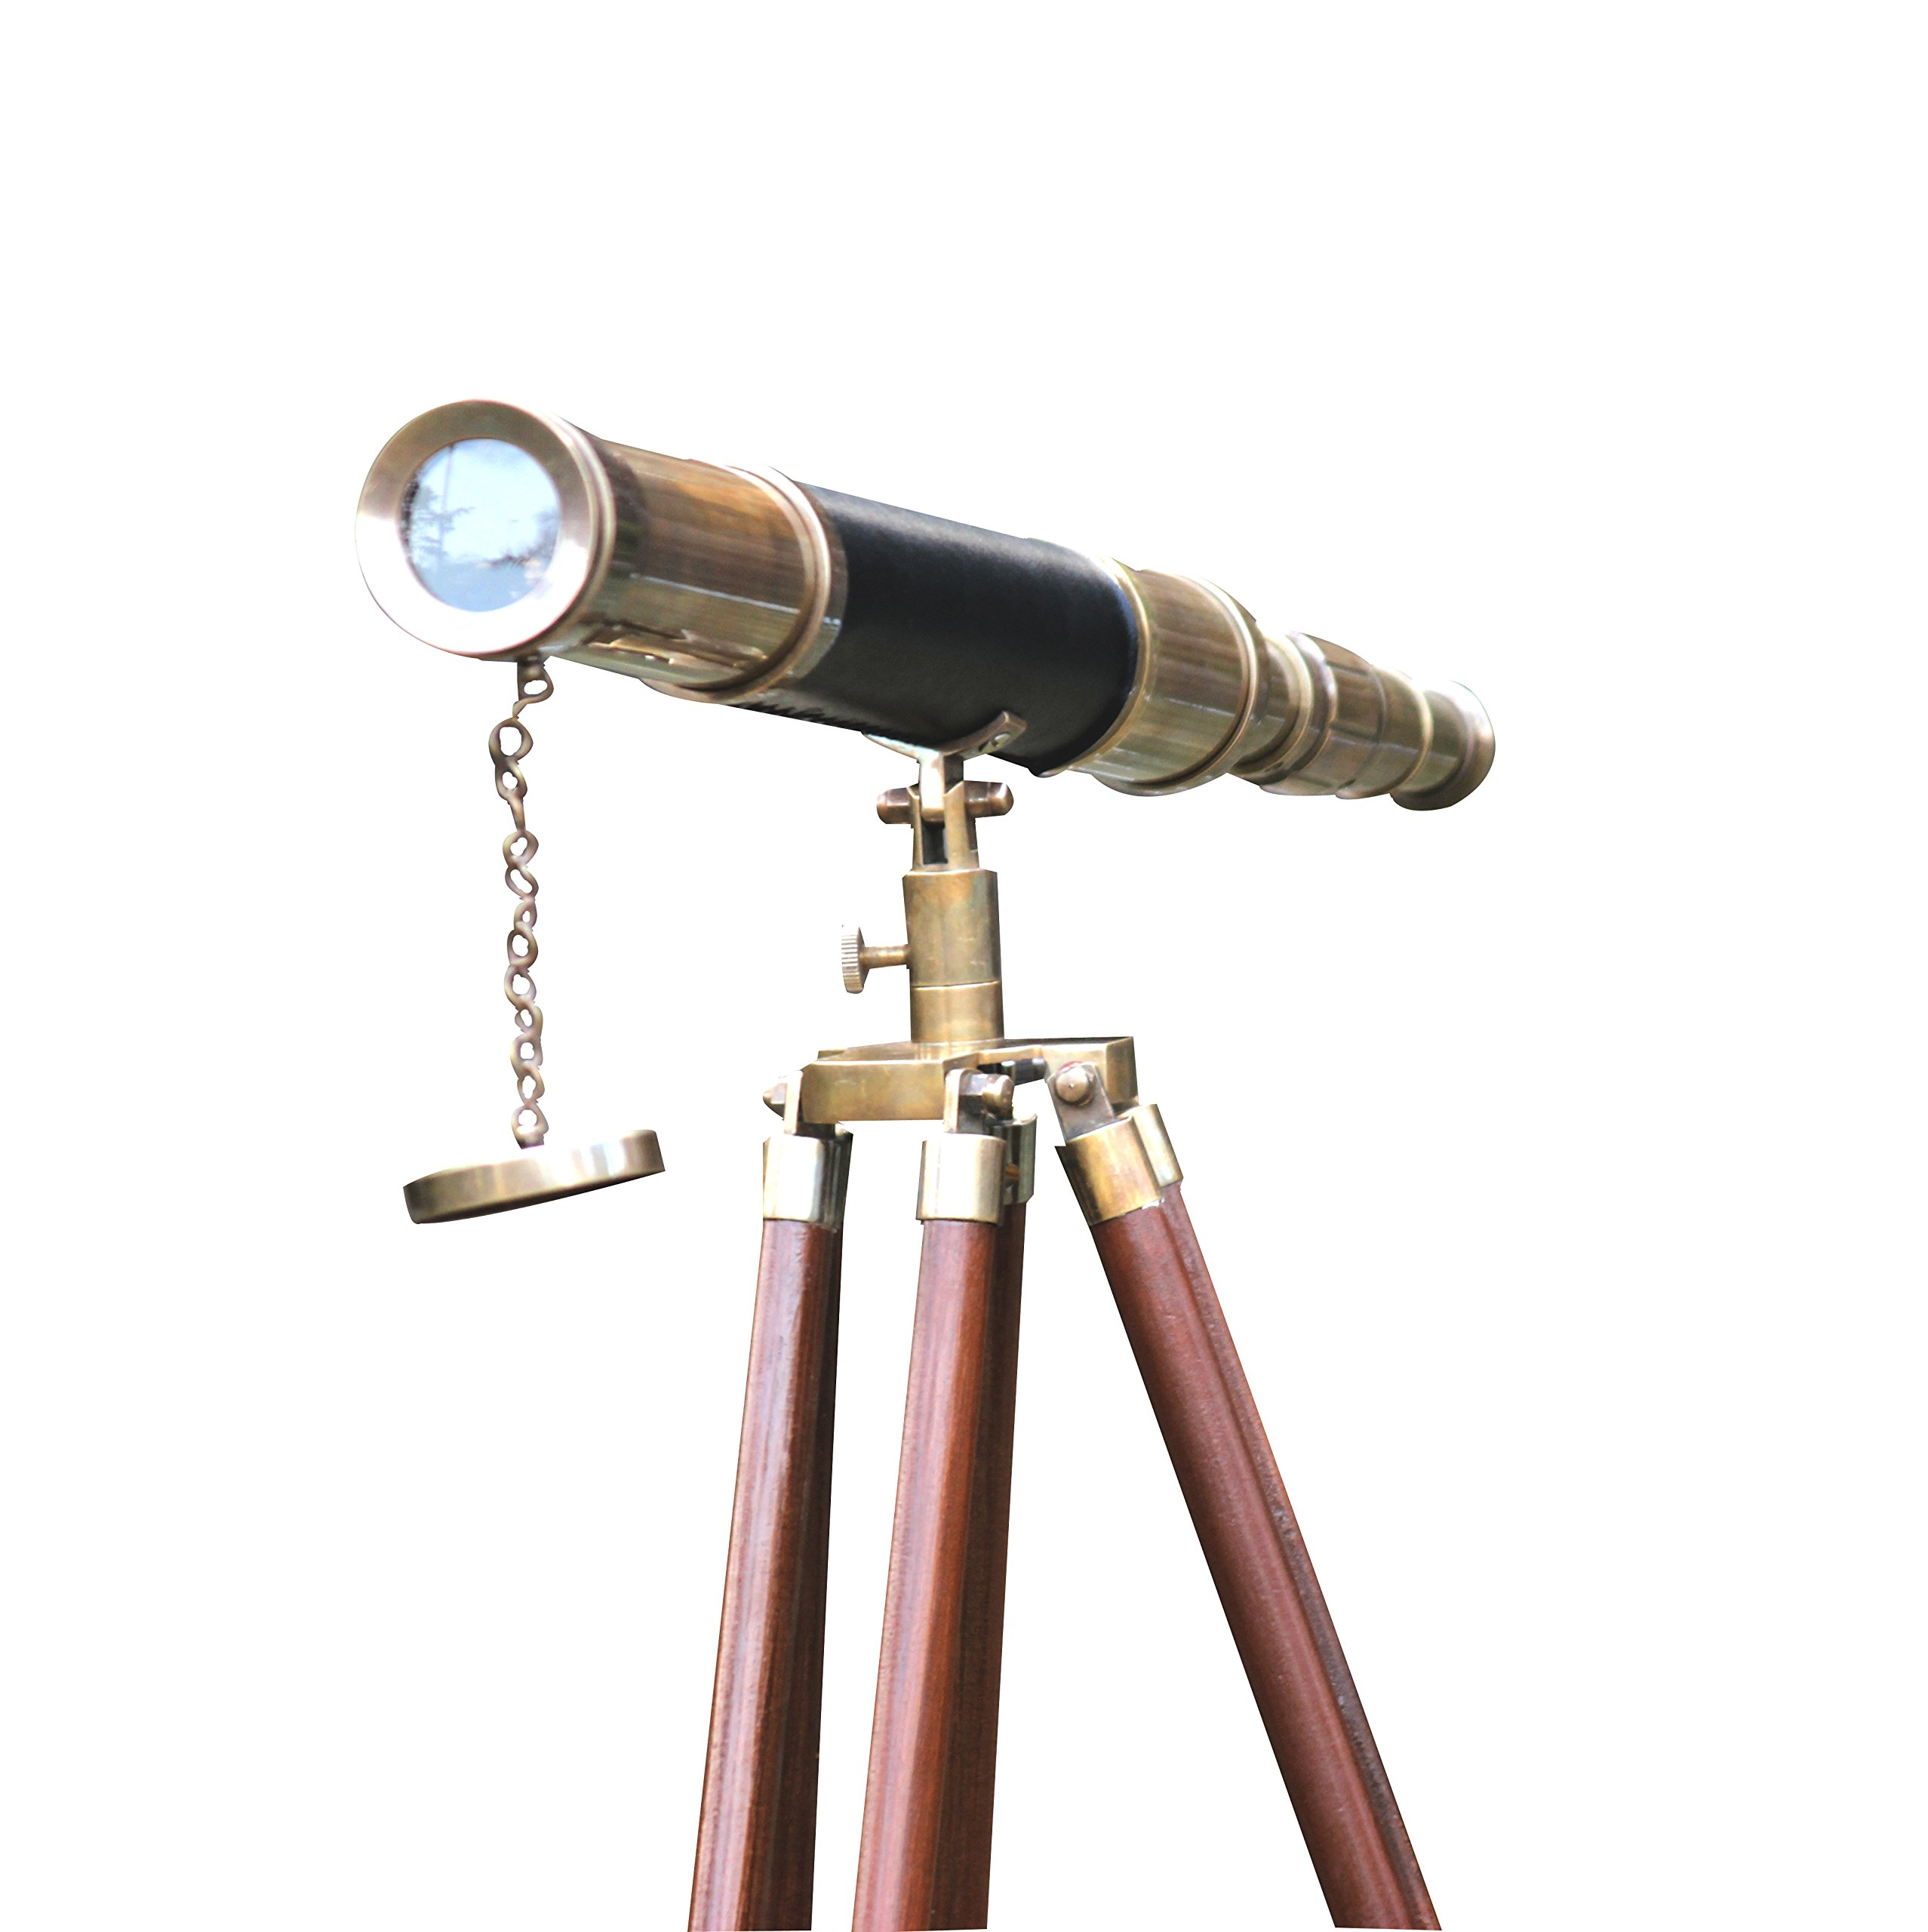 Sailor Boat Antique Telescope Black Leather Wooden Stand Marine Royal Telescopes by Collectibles Buy (Image #8)